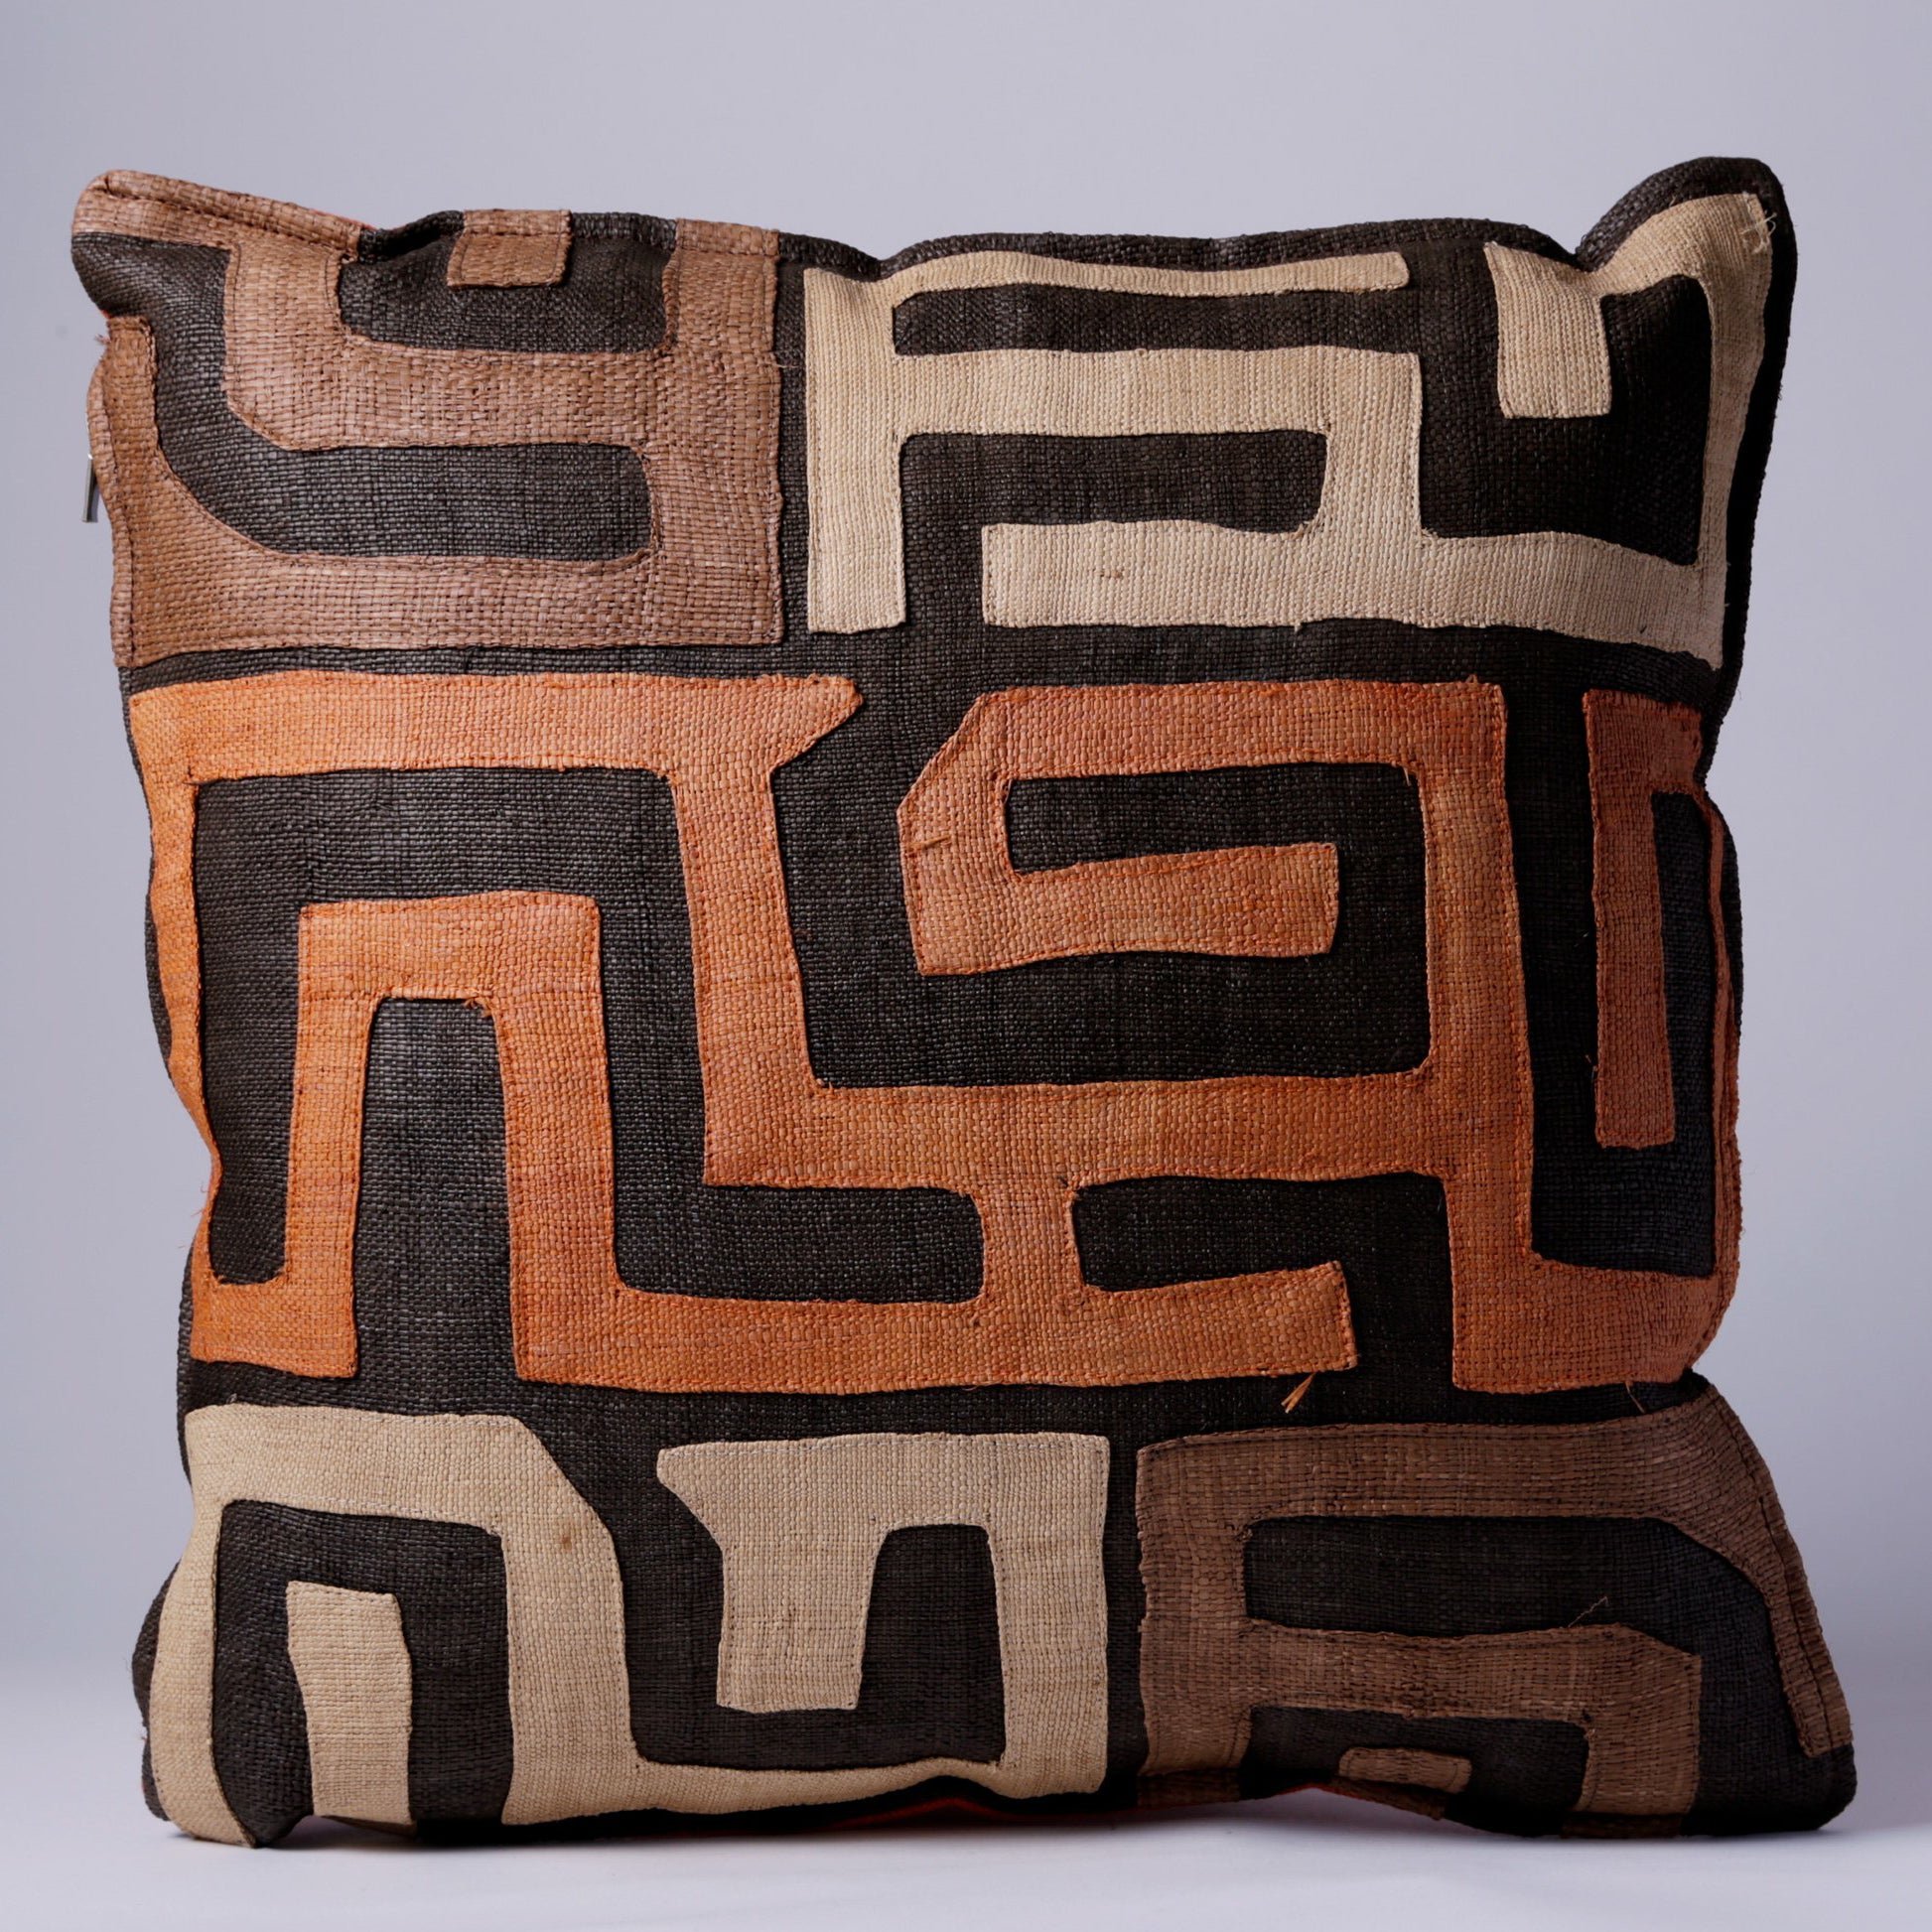 SAMBOUE PILLOW, BROWN